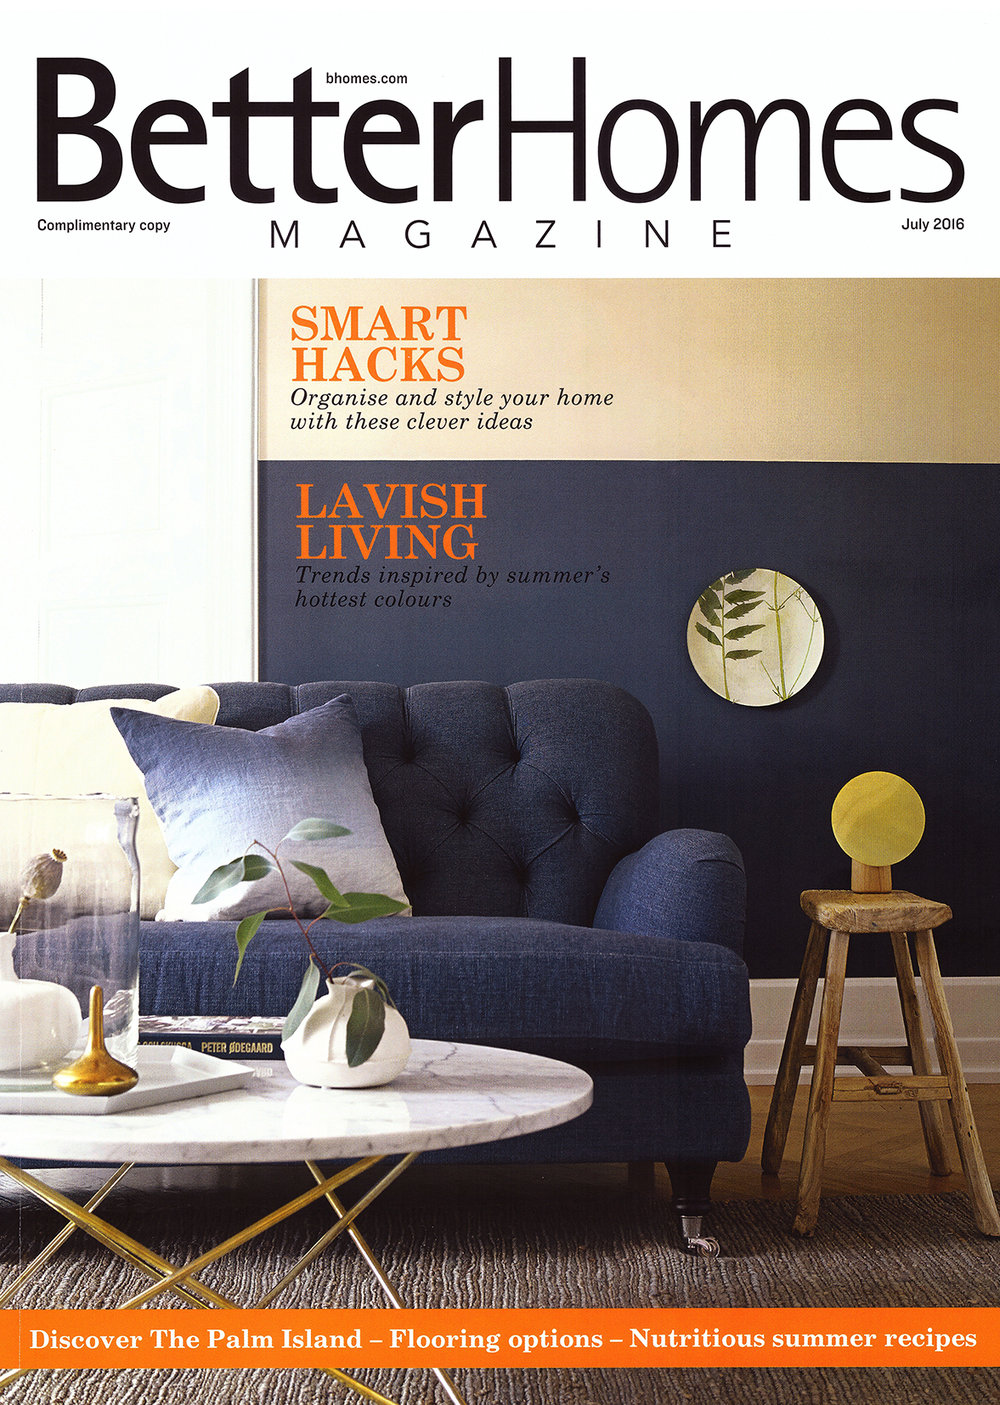 Better Homes-July 2016-low res.jpg